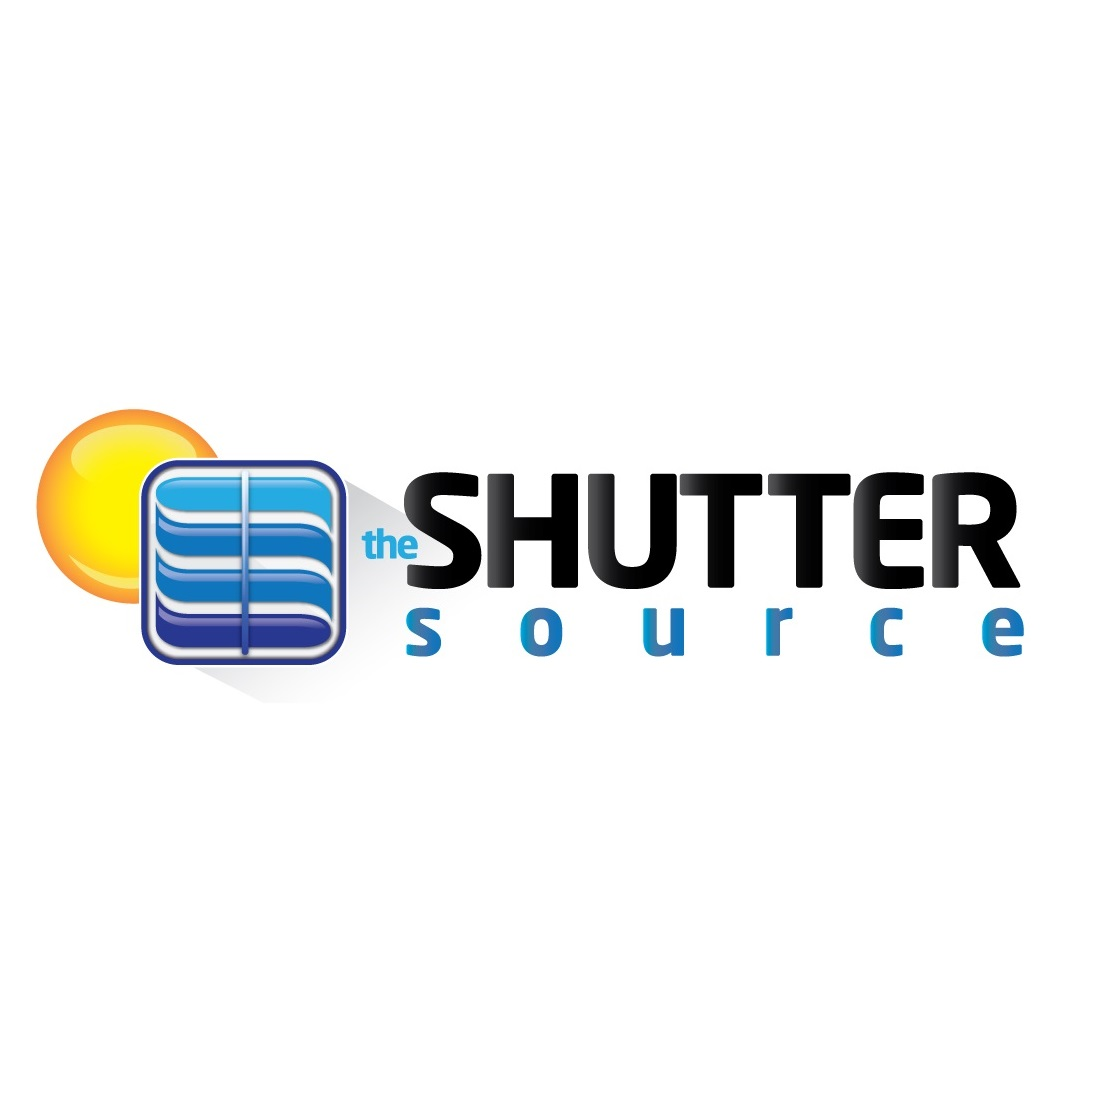 The Shutter Source